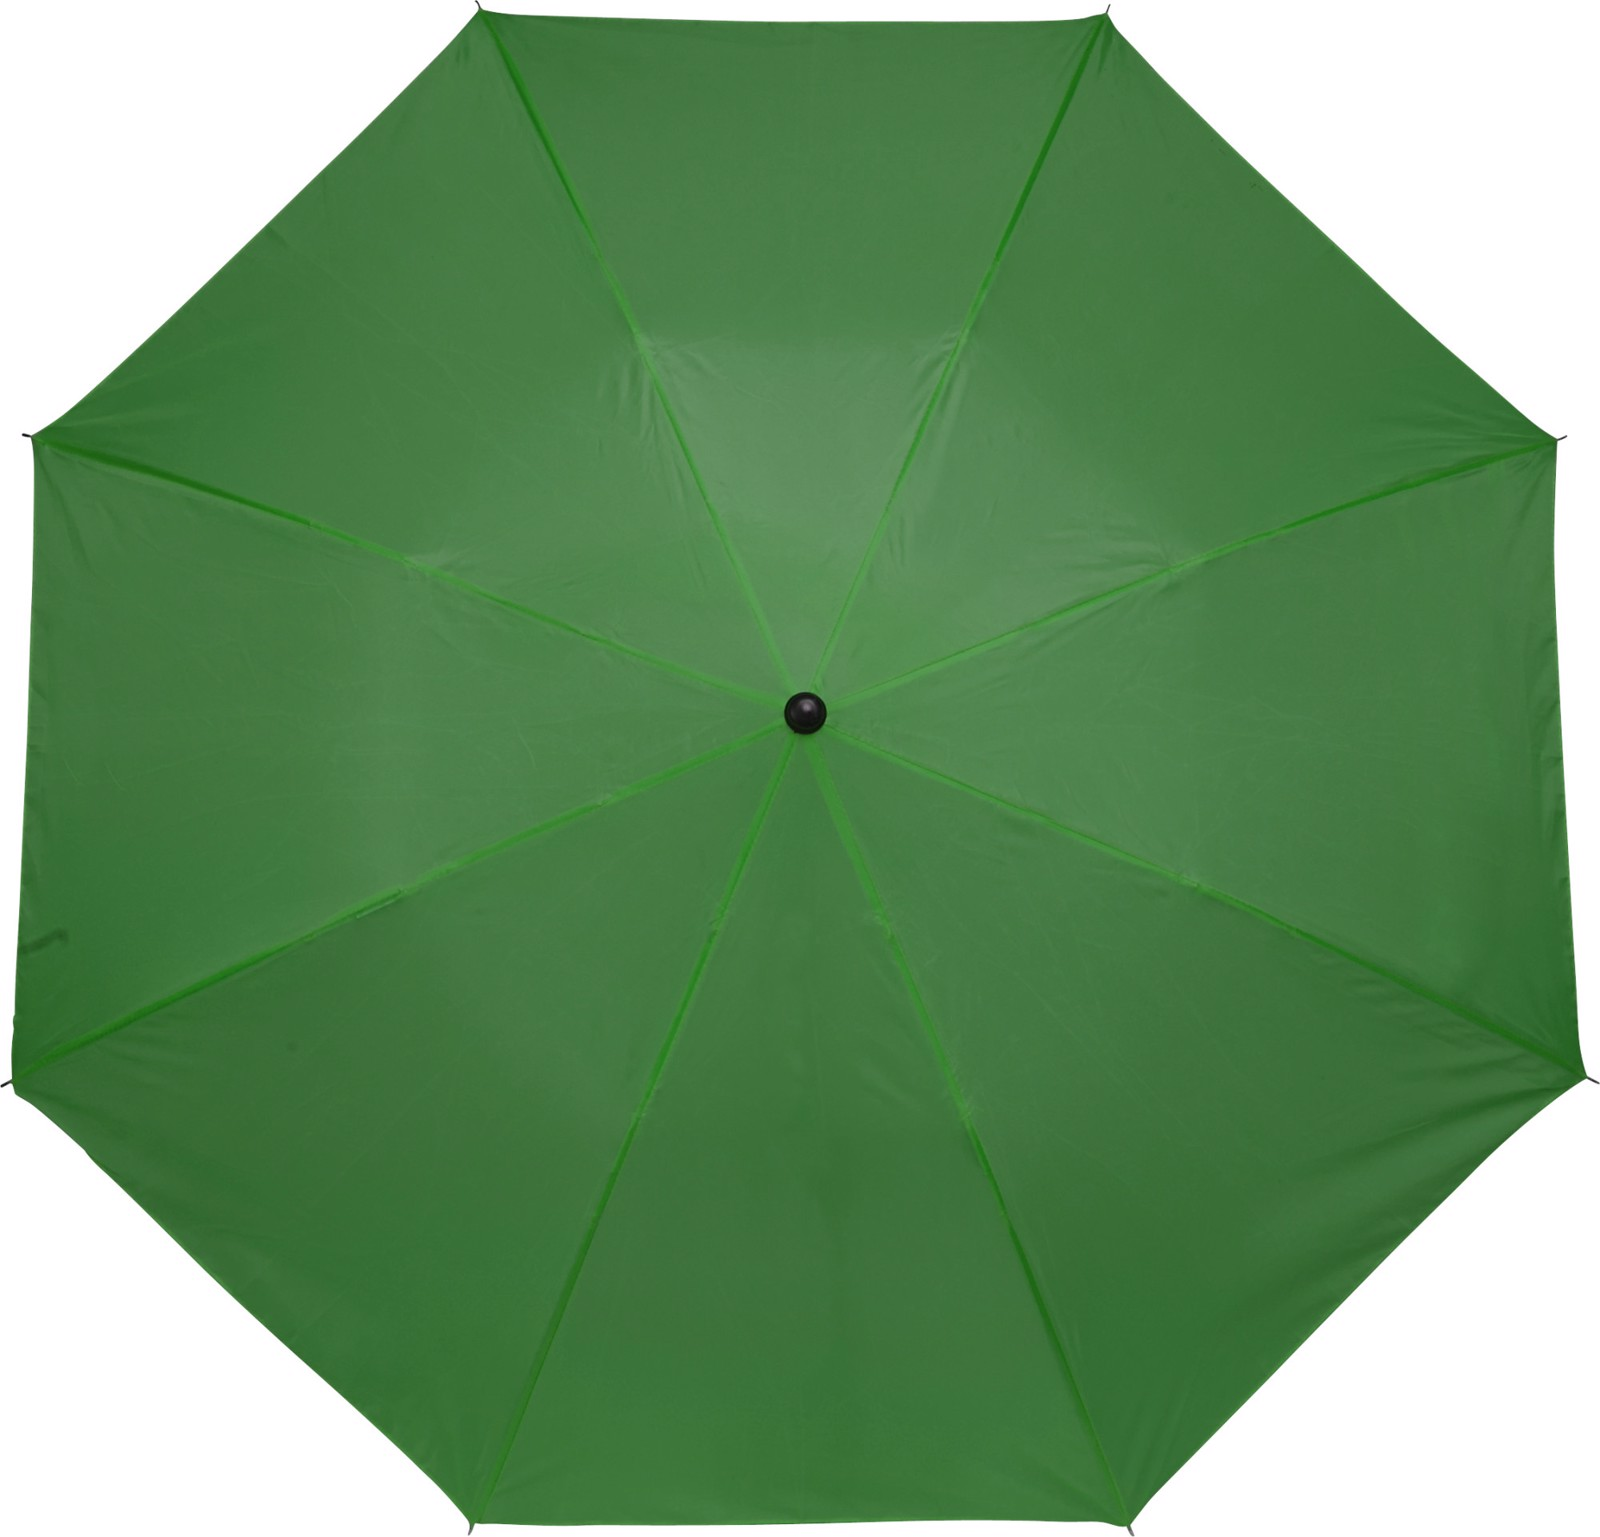 Polyester (190T) umbrella - Green